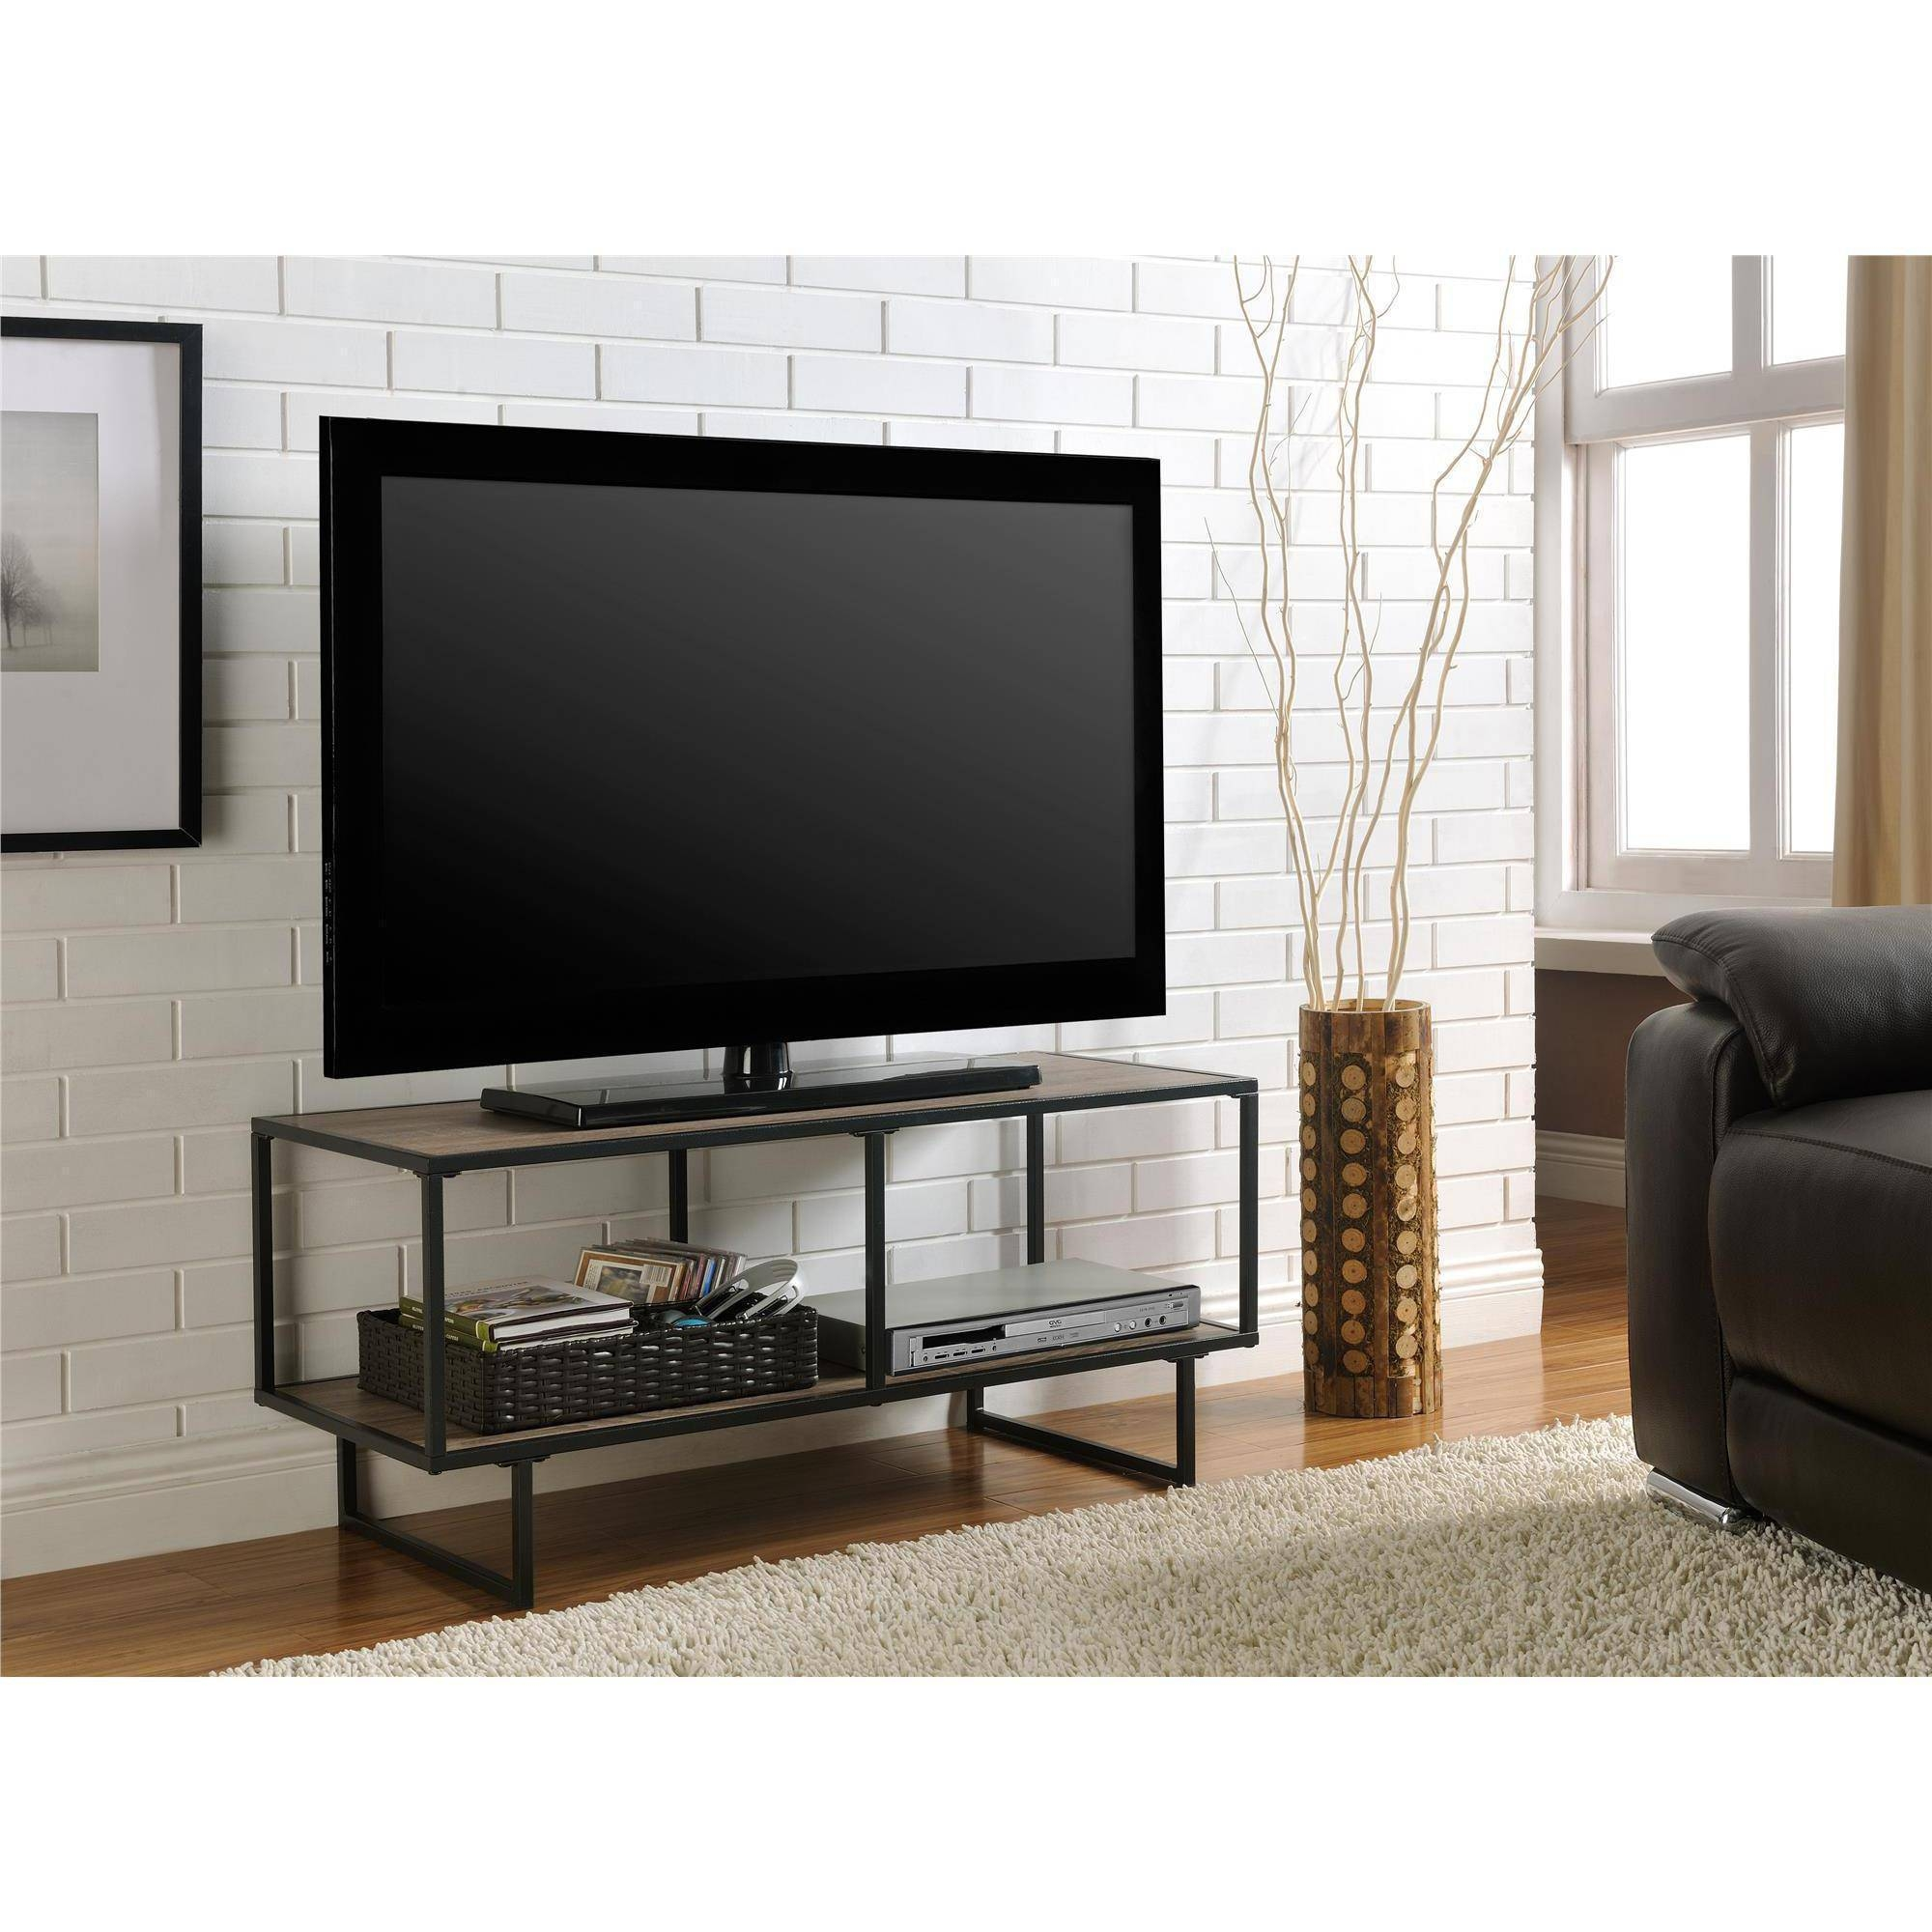 "Ameriwood Home Emmett Tv Stand/coffee Table For Tvs Up To 42"" Wide regarding Tv Stand Coffee Table Sets (Image 4 of 30)"